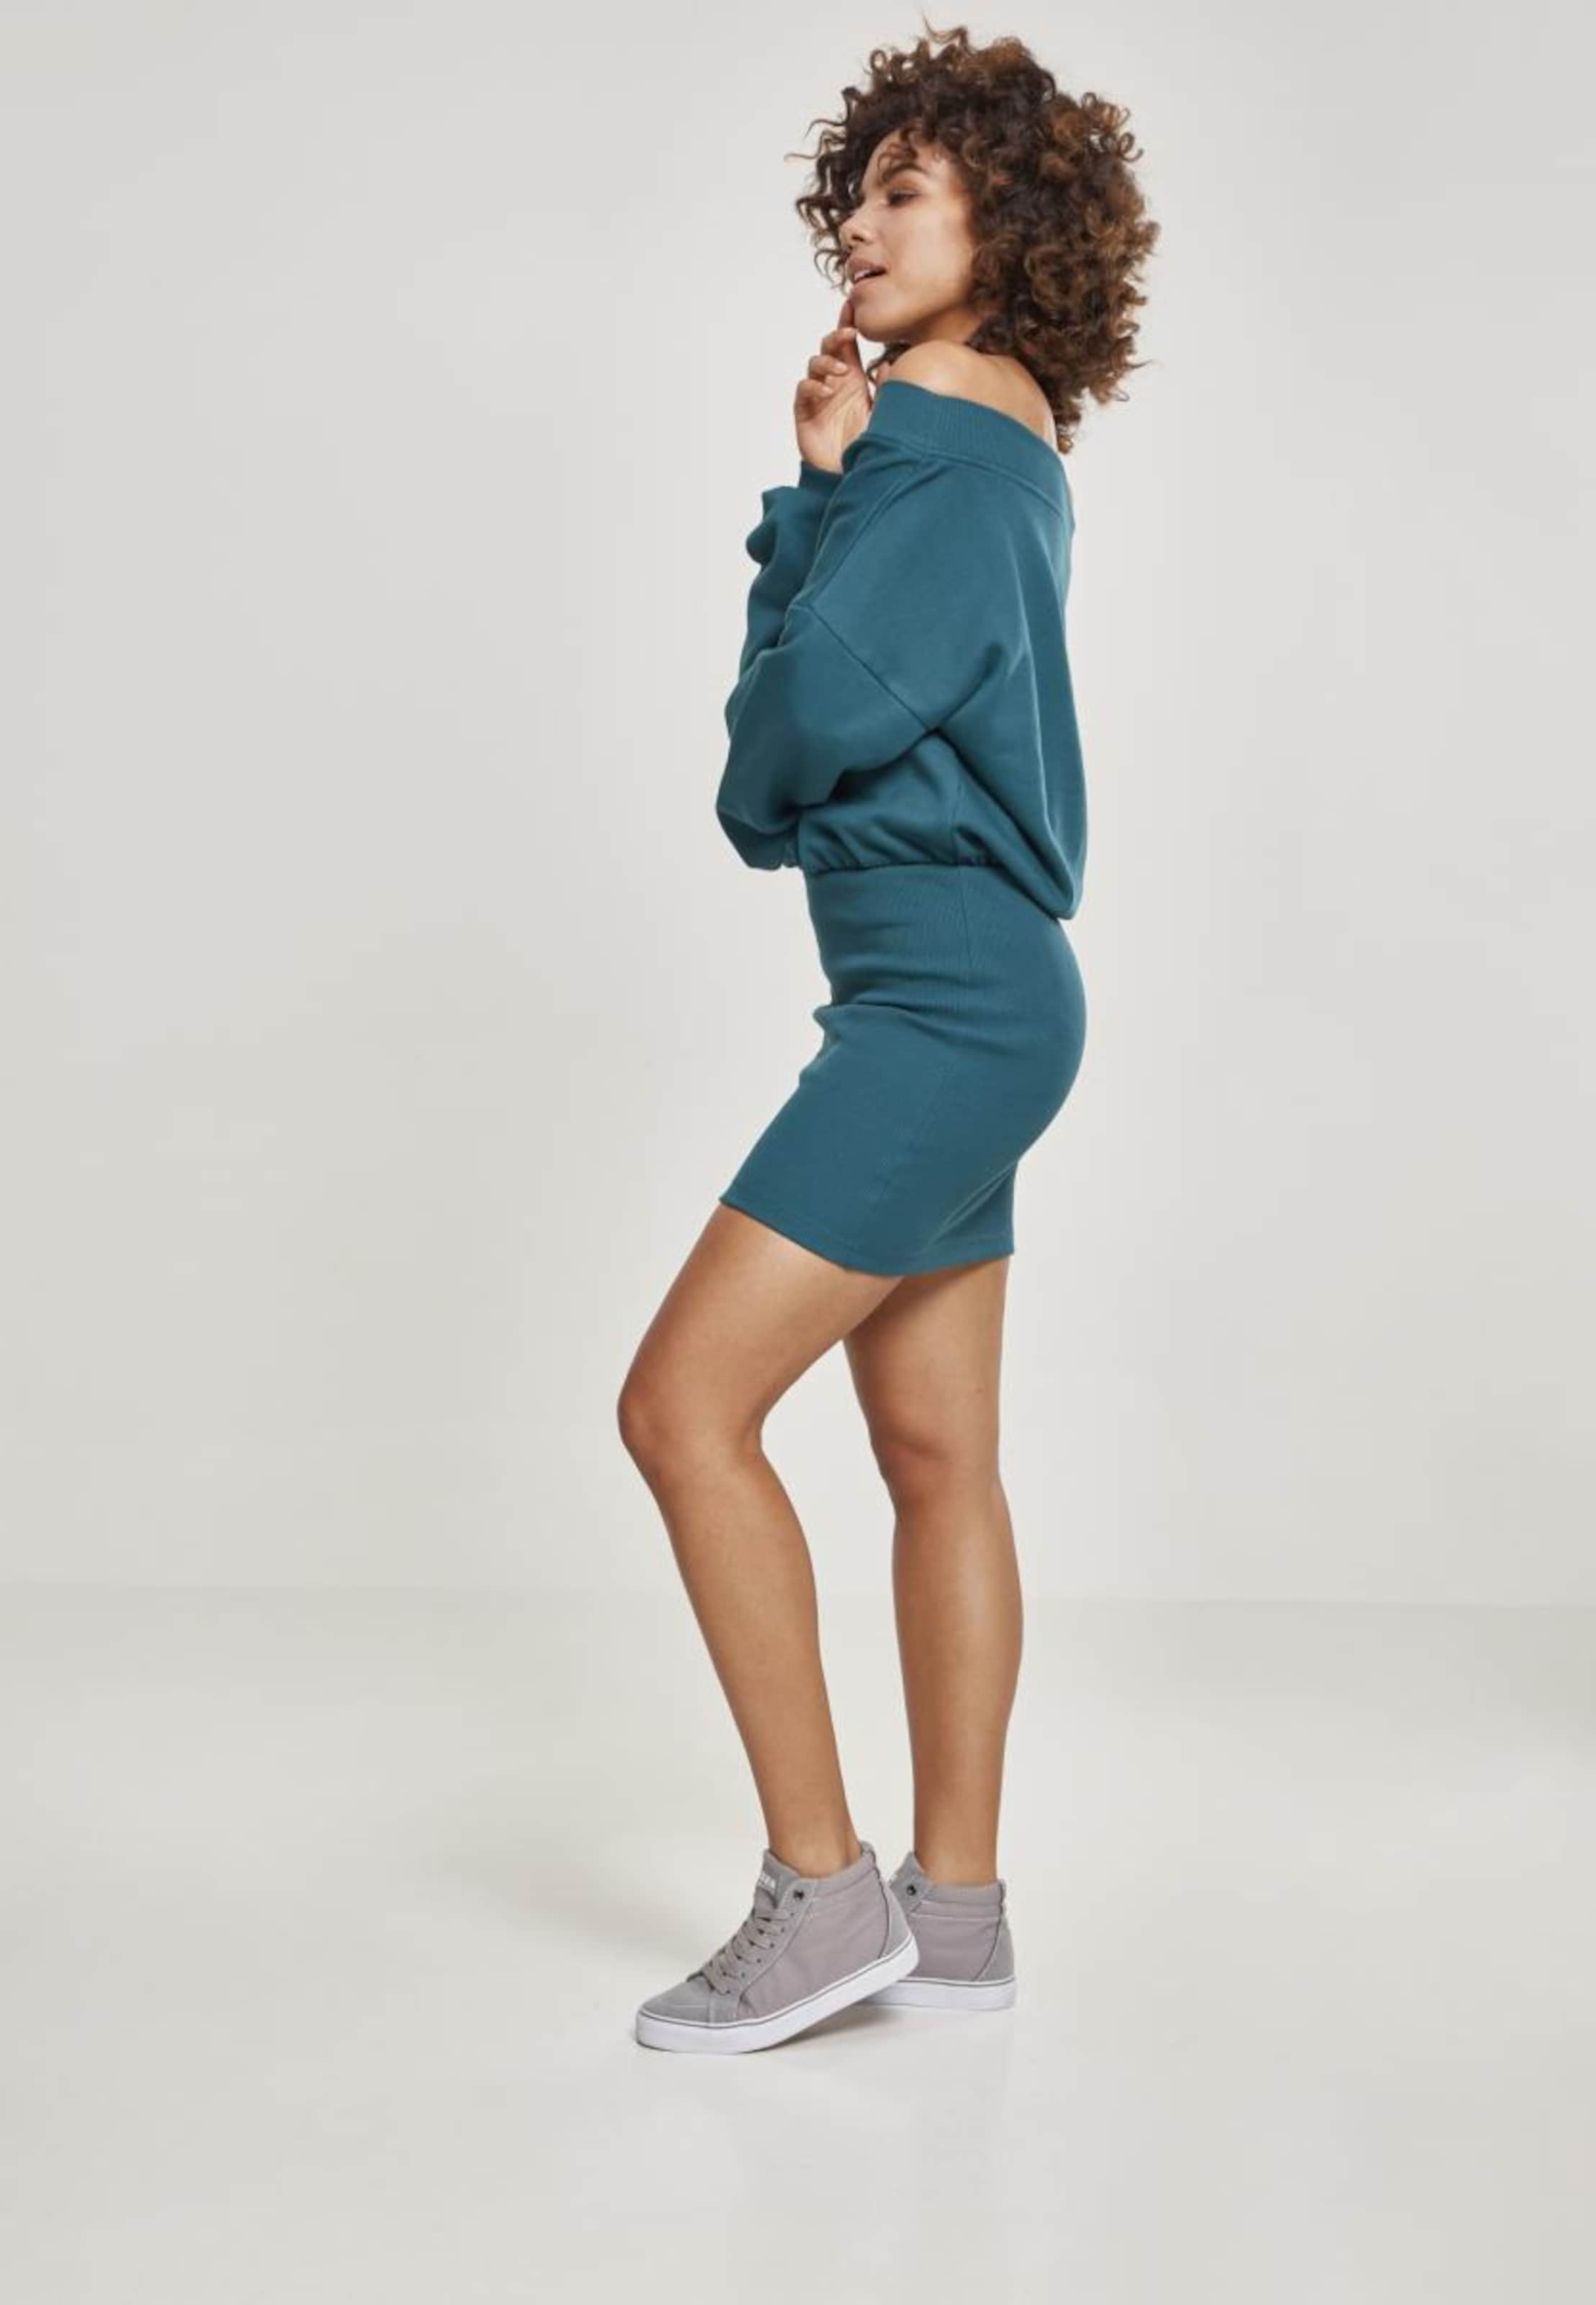 Taubenblau Urban Dress Taubenblau Classics In Dress Urban Classics In YDIEH2W9